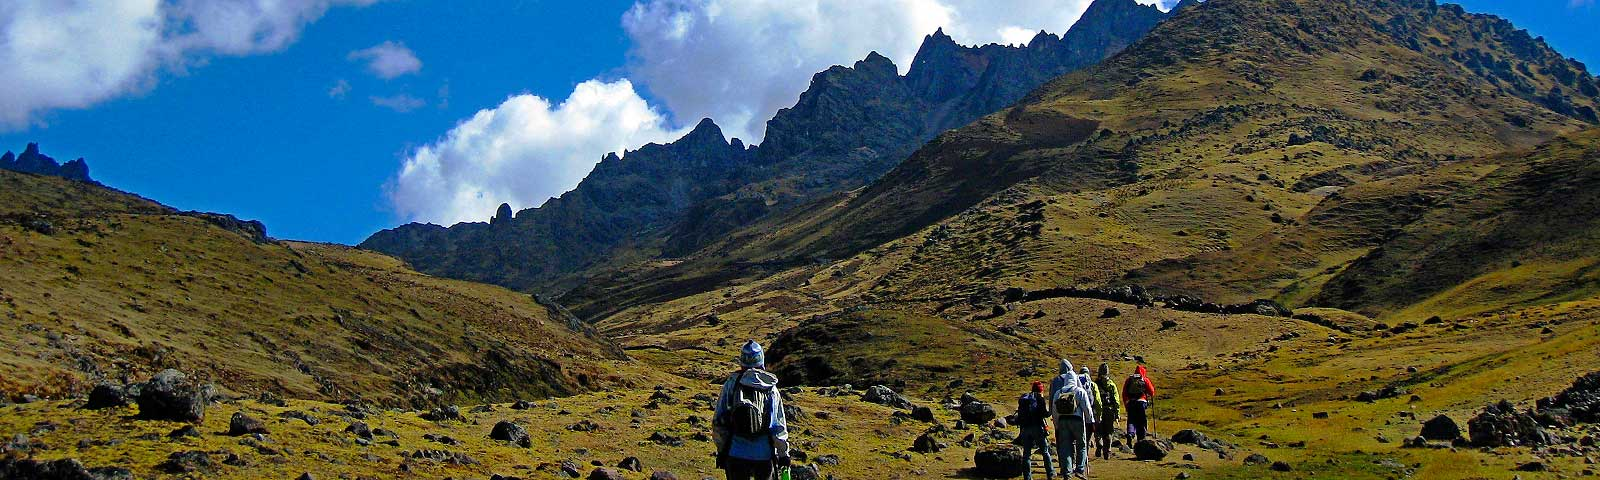 LARES TREK TO MACHU PICCHU 5 DAYS / 4 NIGHTS